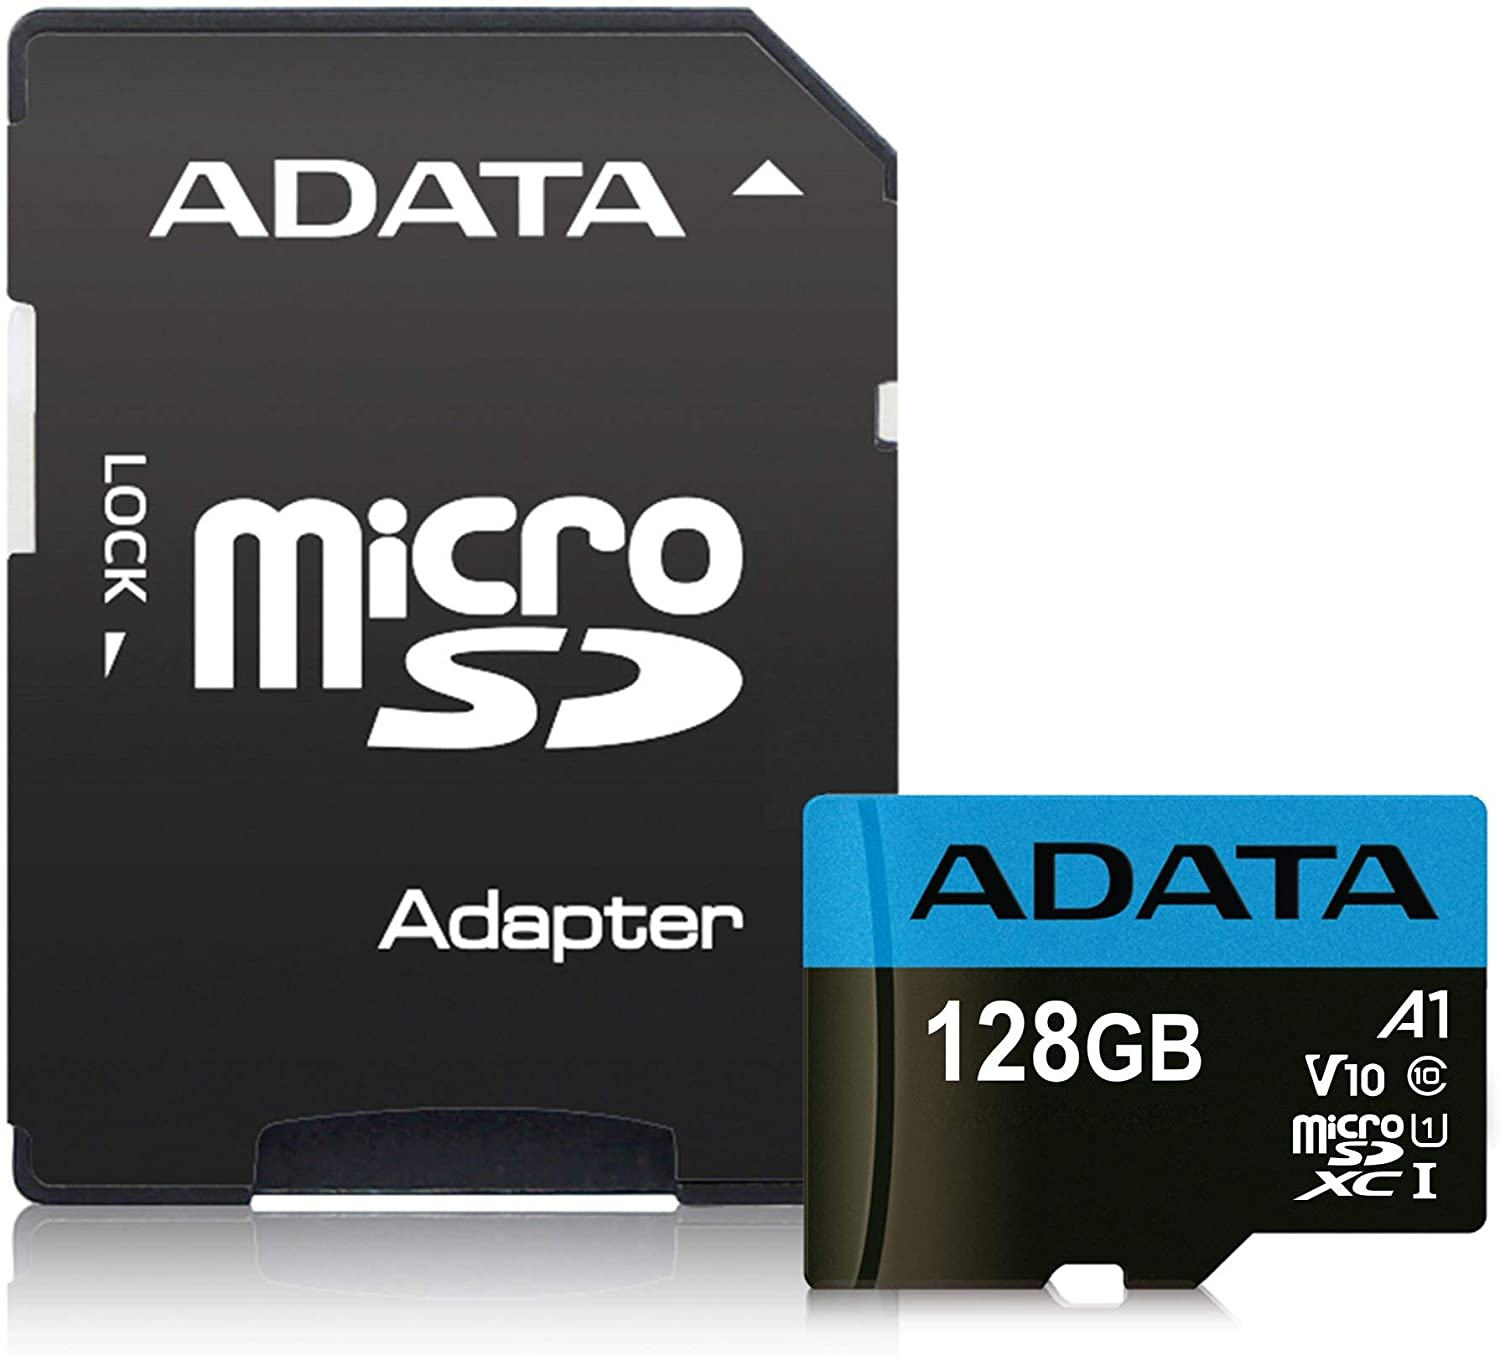 ADATA Premier 128GB MicroSDHC/SDXC UHS-I Class 10 V10 A1 Memory Card with Adapter Read up to 100 MB/s (AUSDX128GUICL10A1-RA1)